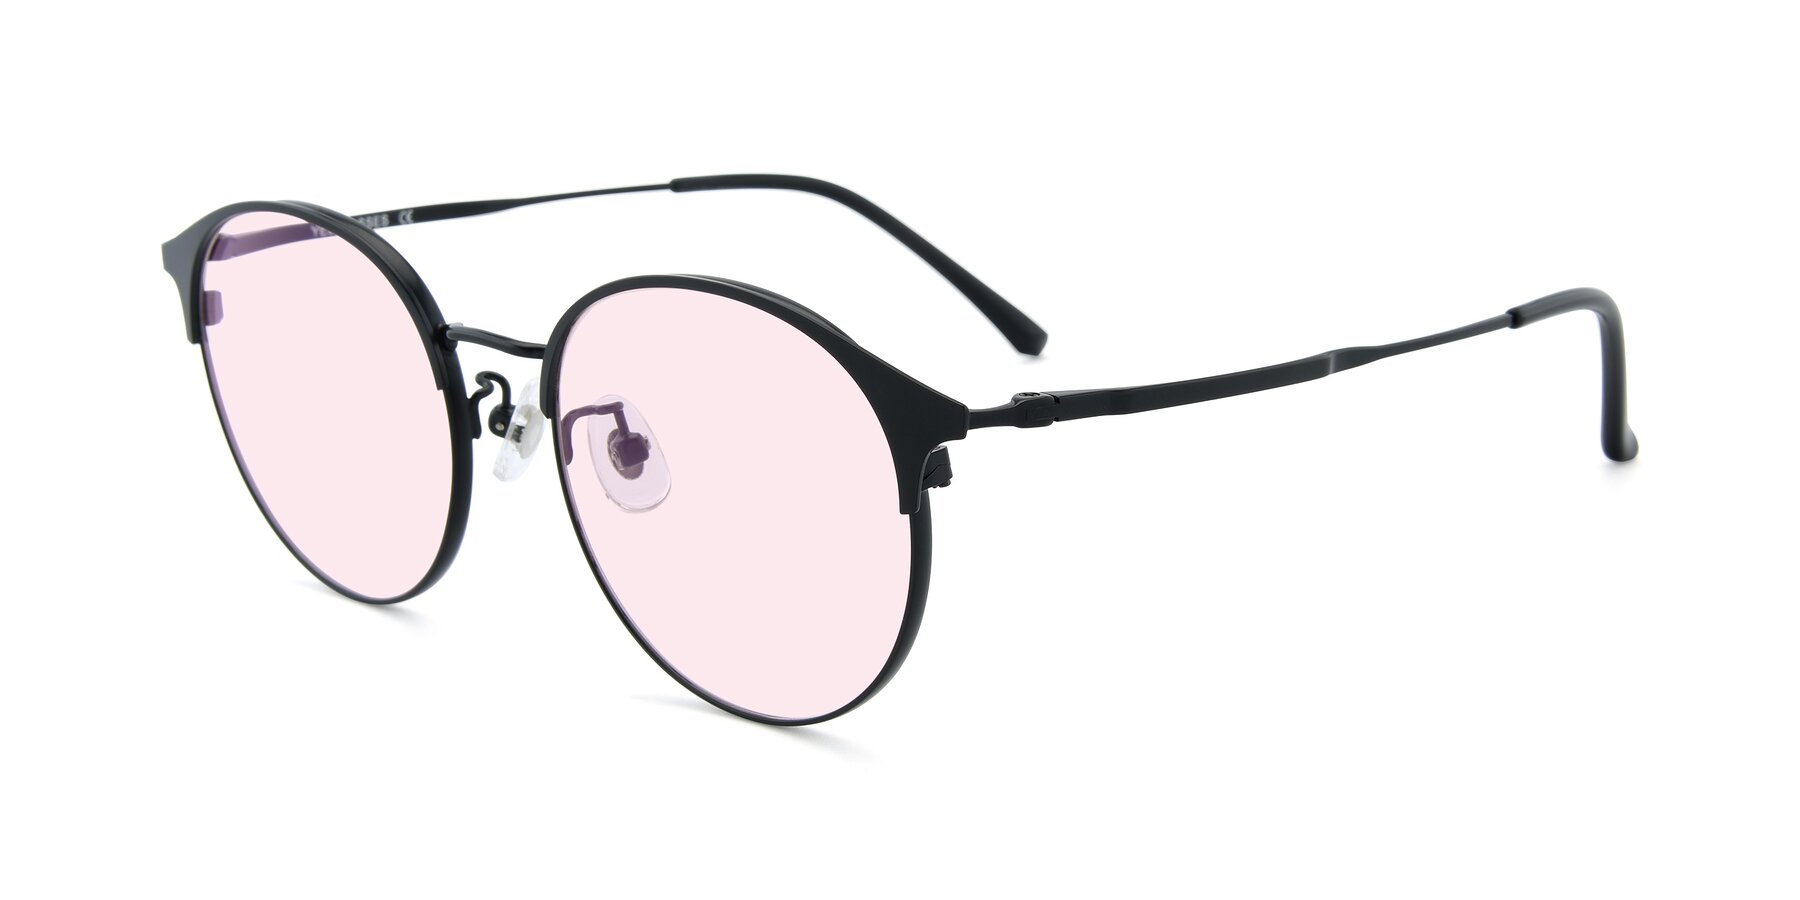 Angle of XC-8031 in Matte Black with Light Pink Tinted Lenses